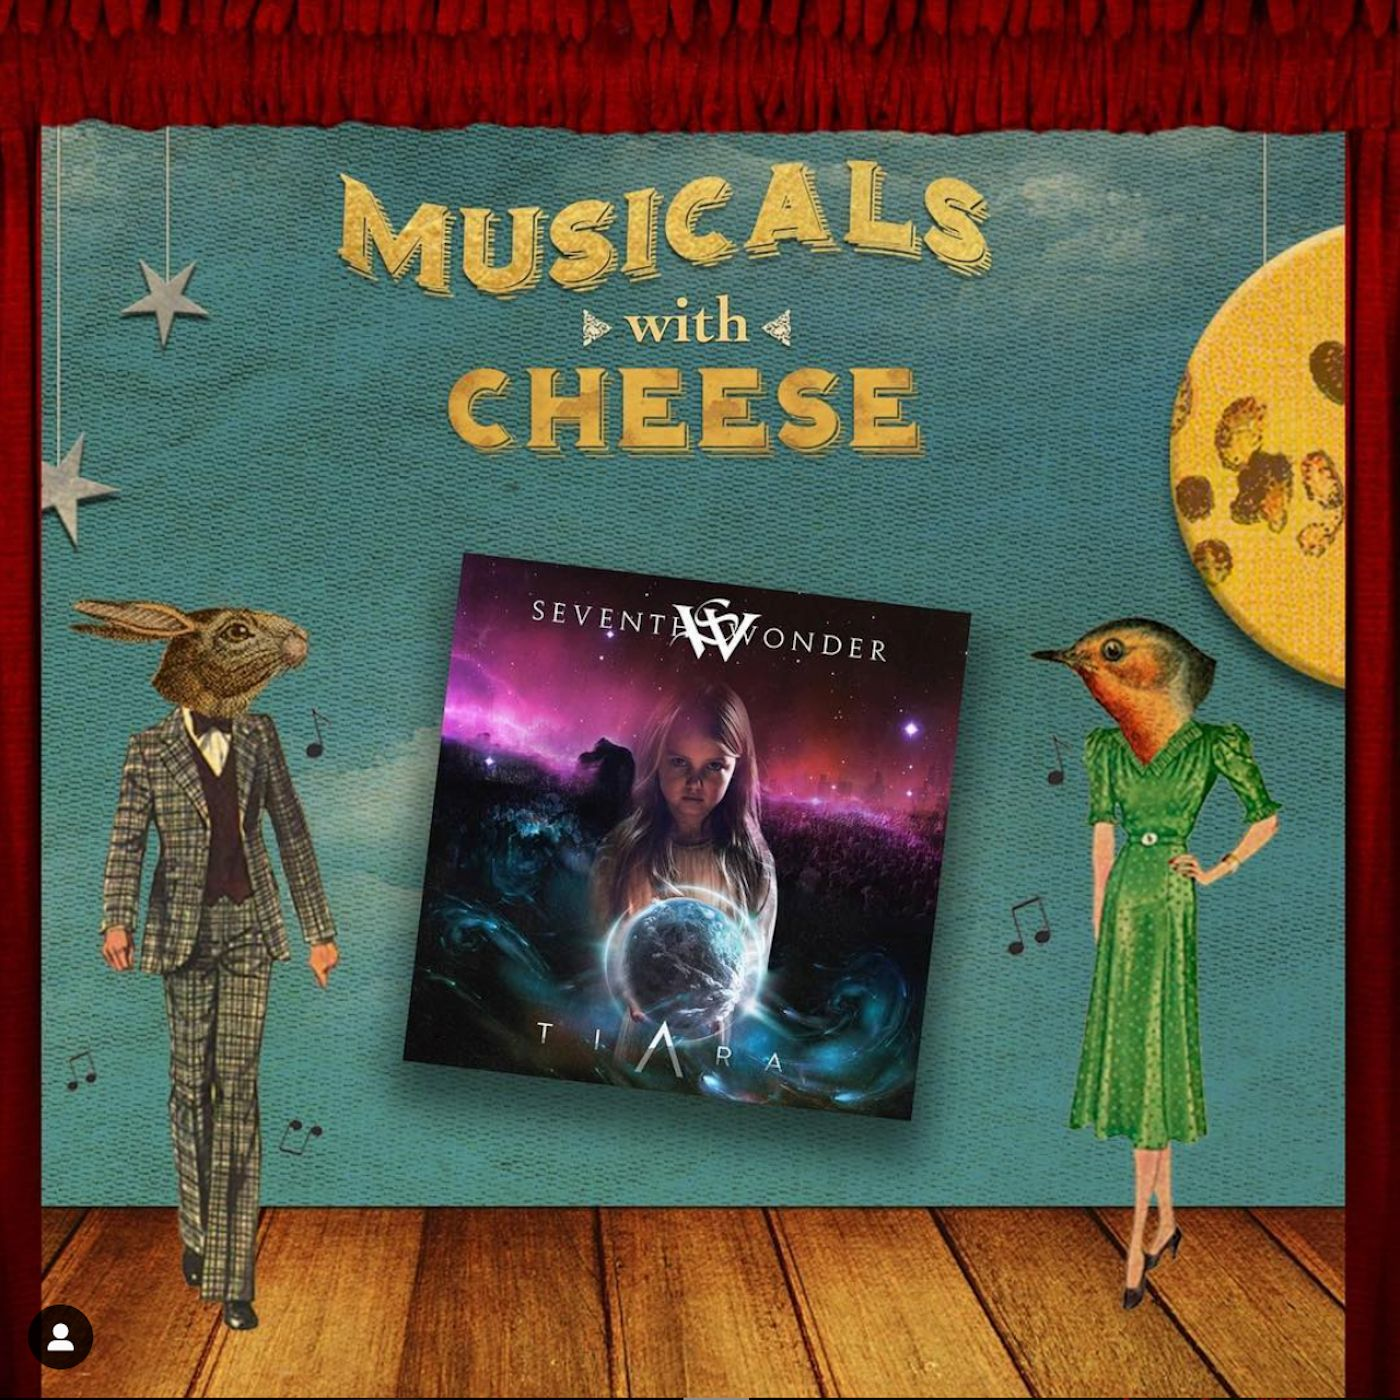 Musicals With Cheese #10: Tiara